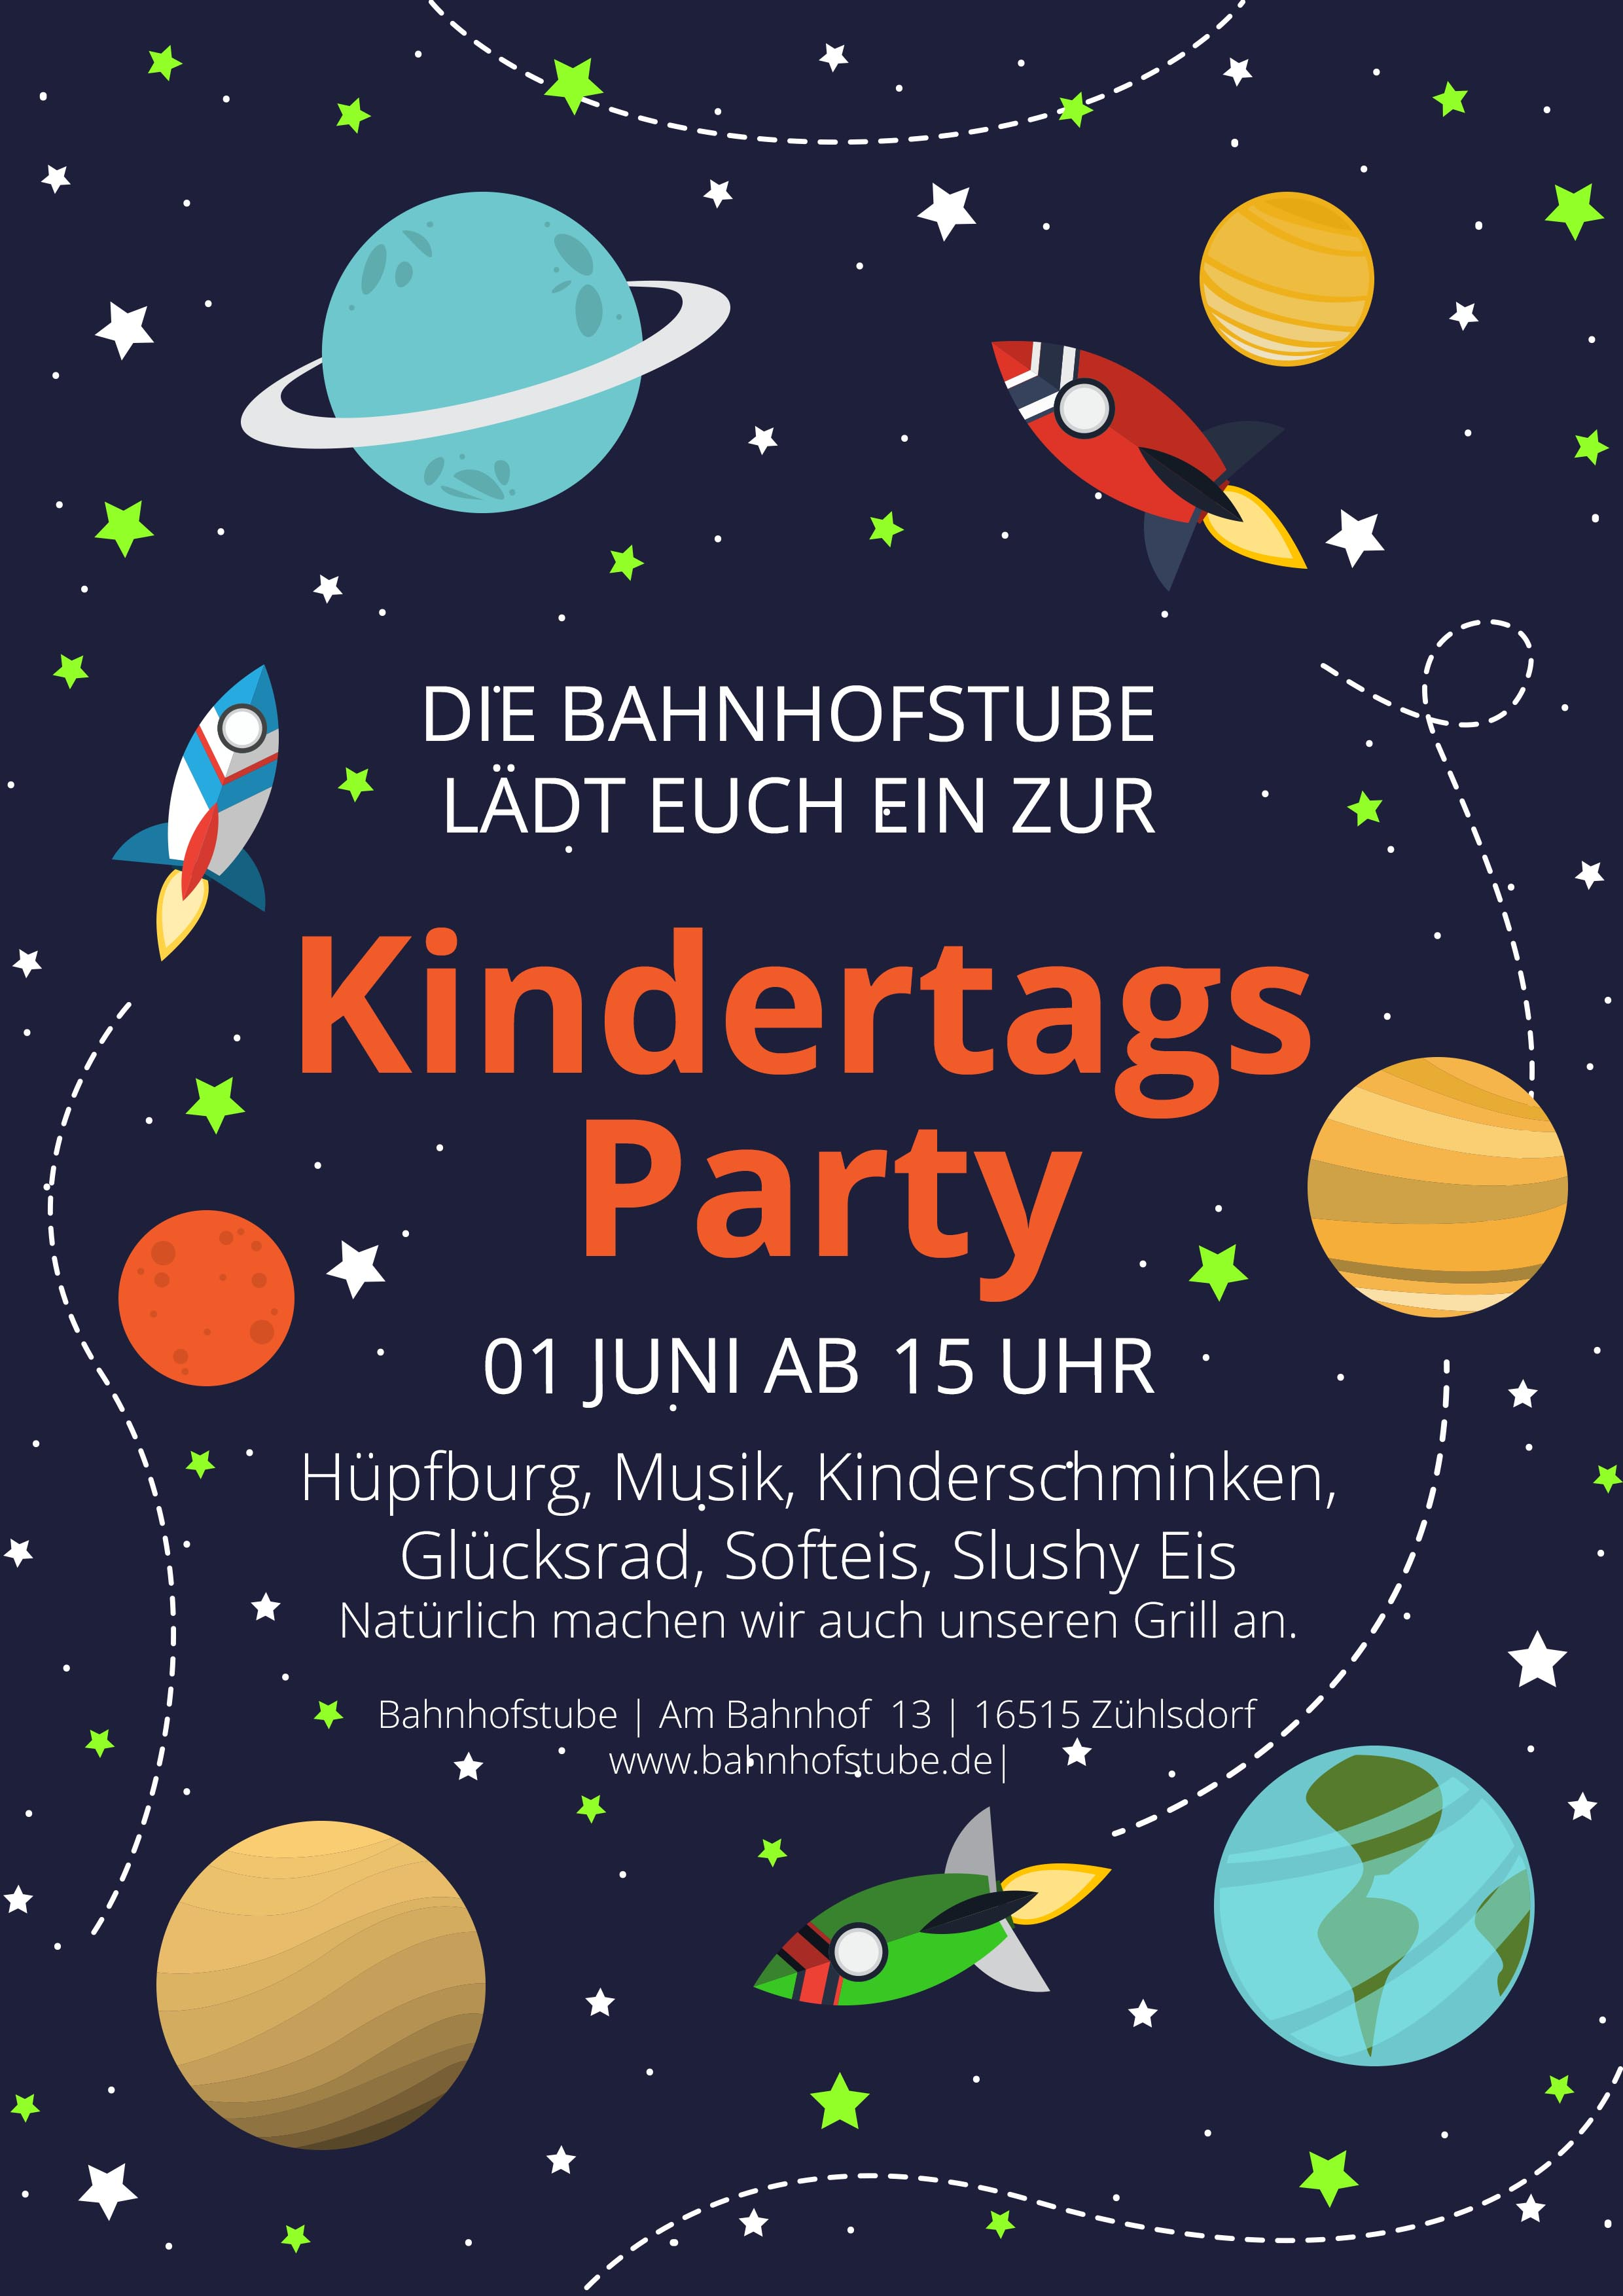 Kindertags Party in der Bahnhofstube Zühlsdorf